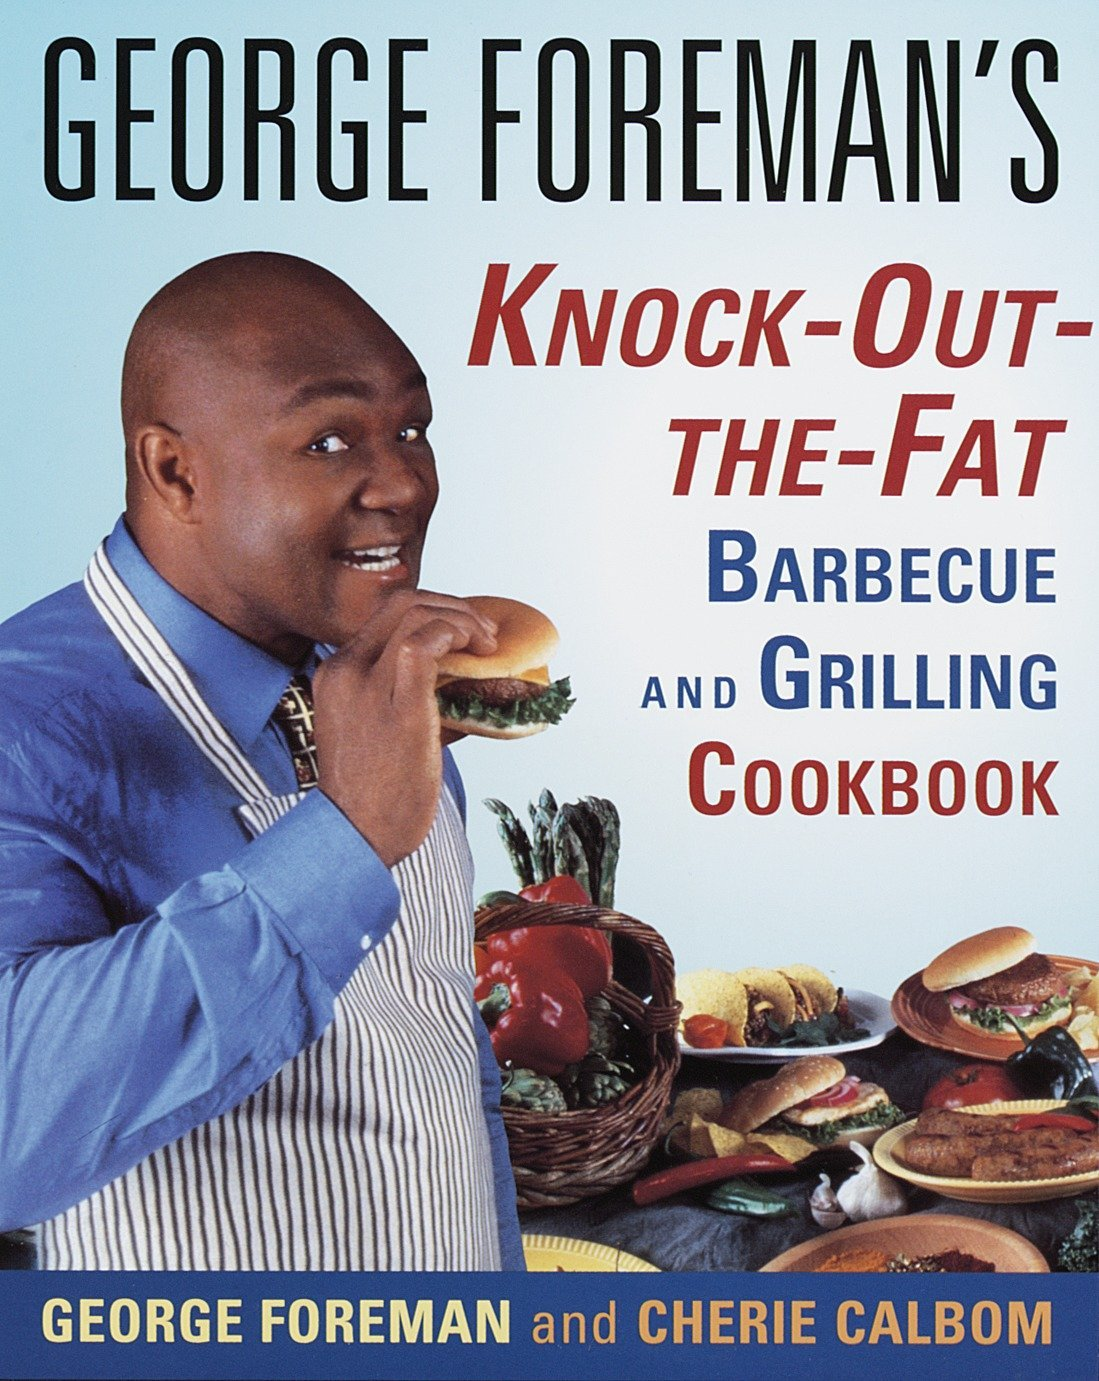 George foremans knock out the fat barbecue and grilling cookbook george foremans knock out the fat barbecue and grilling cookbook george foreman cherie calbom ms cn 0090129013951 amazon books fandeluxe Images